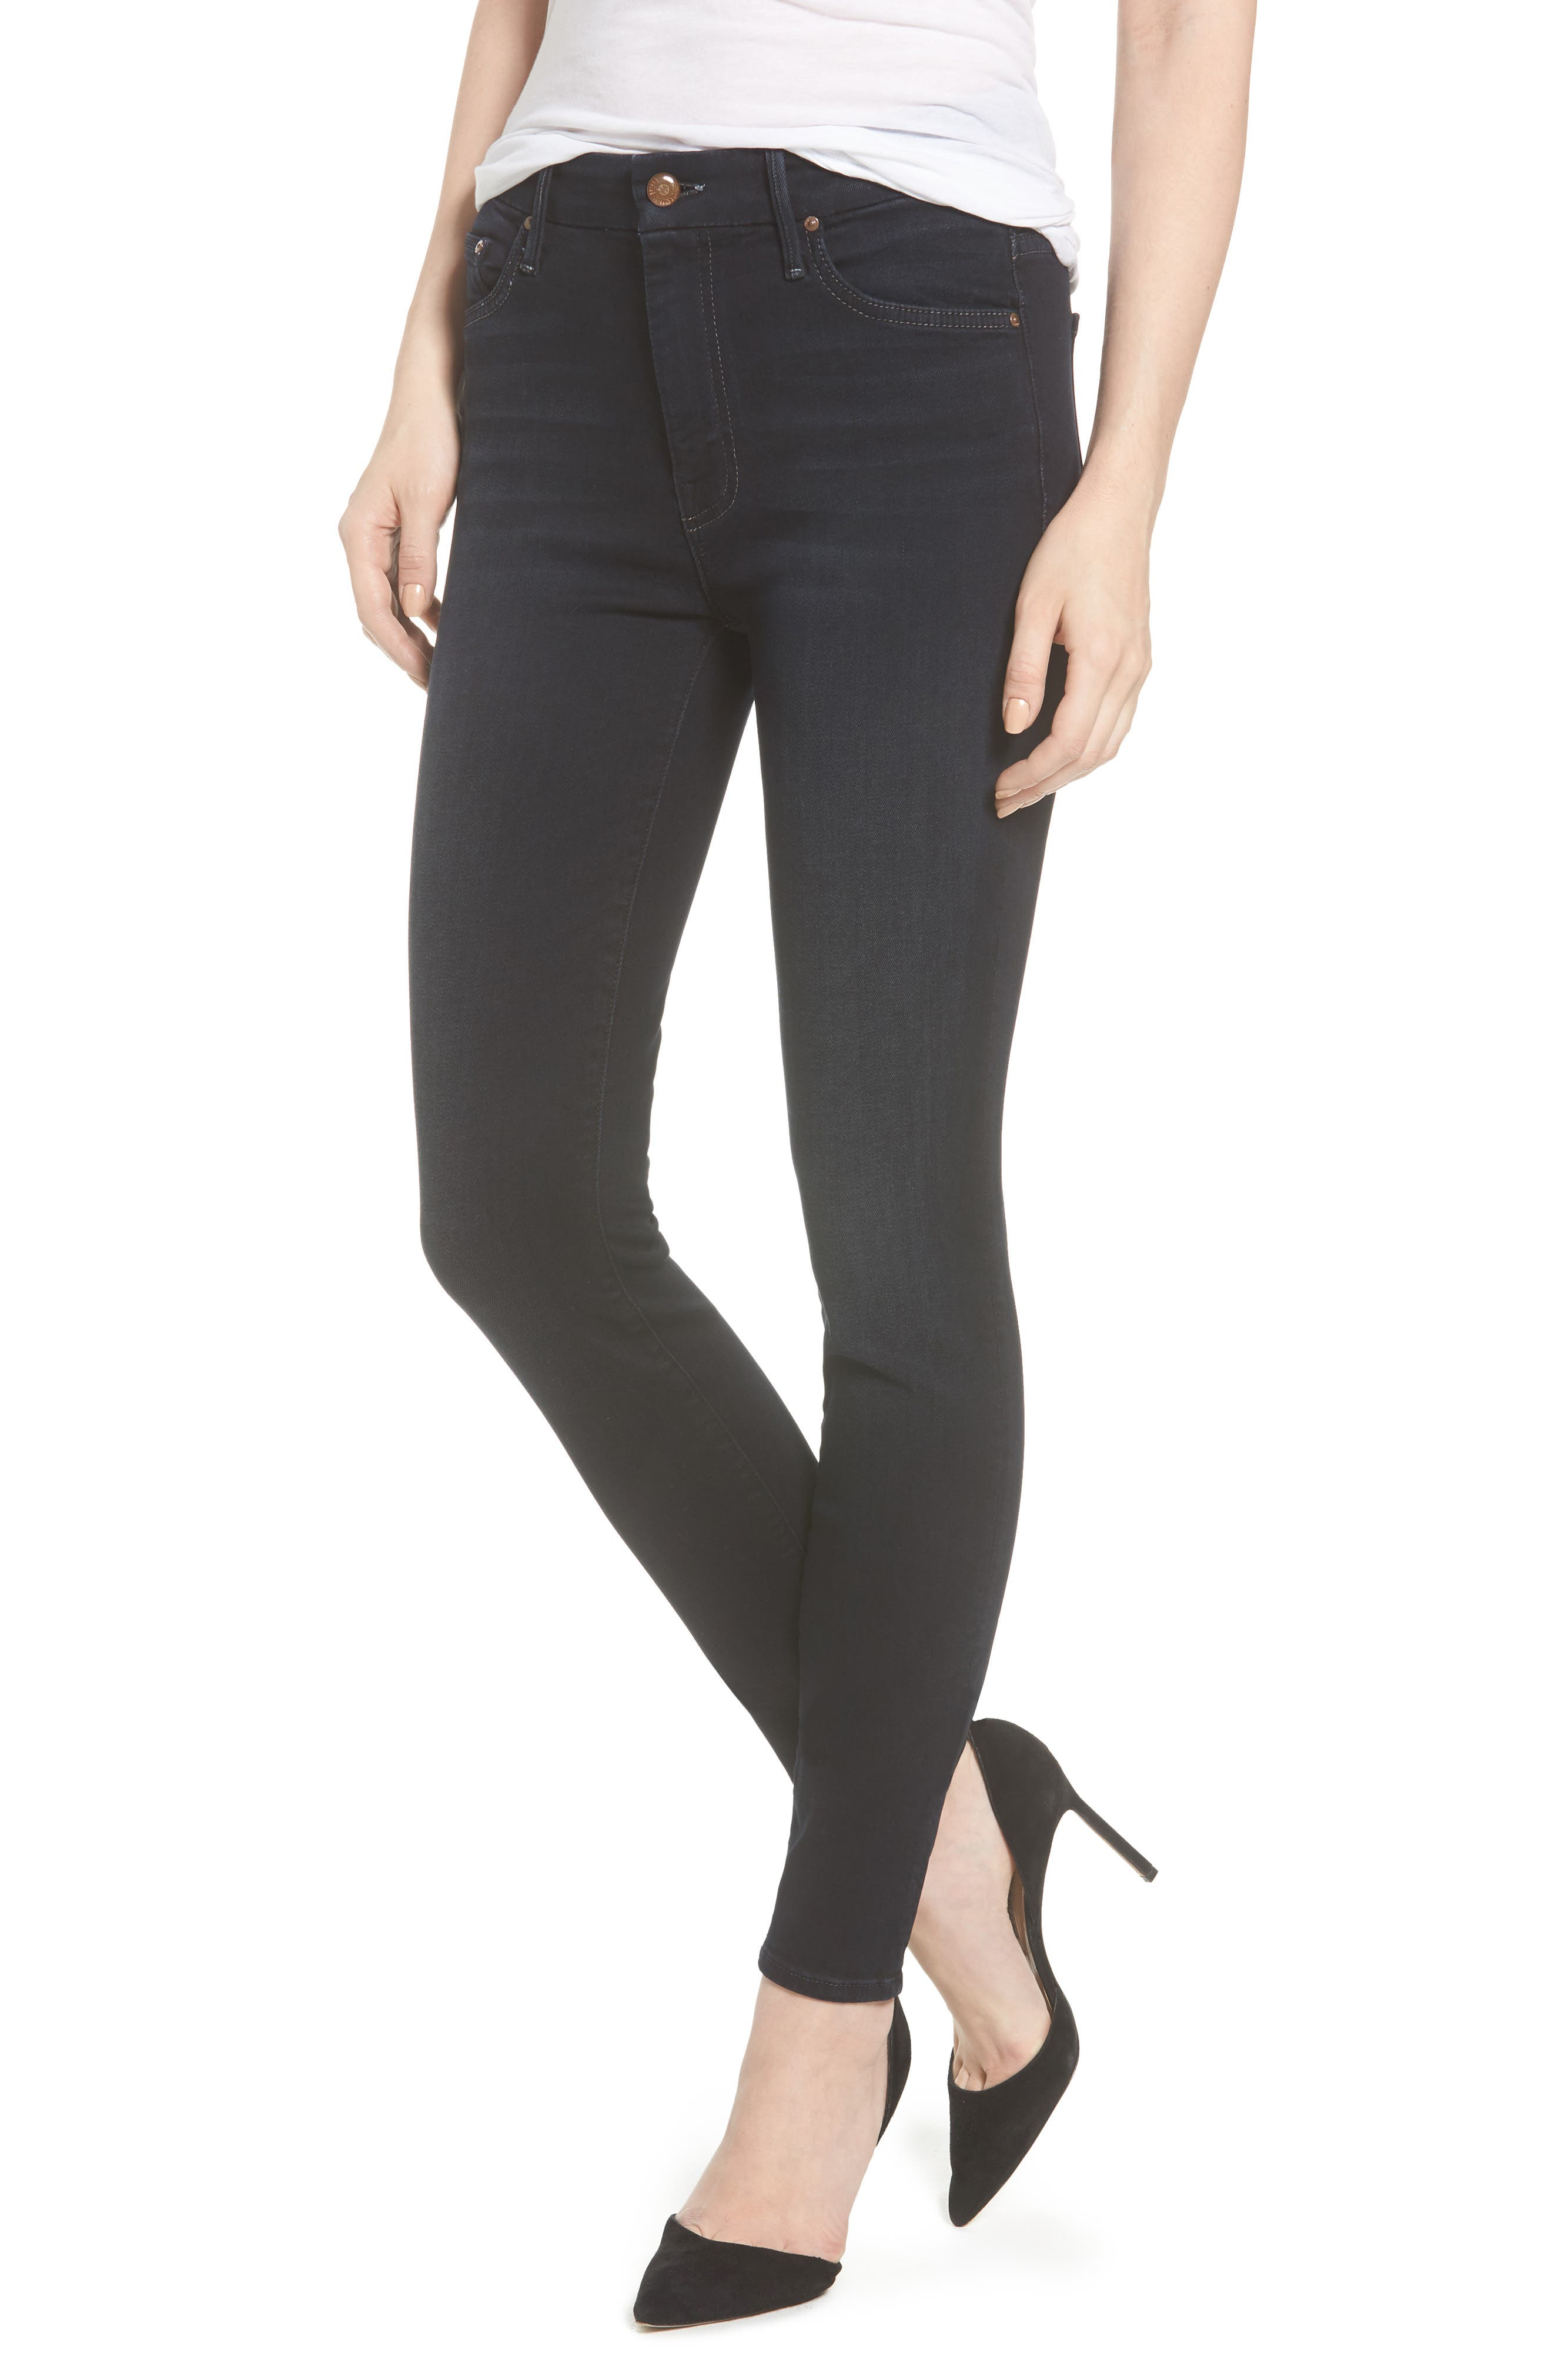 MOTHER, 'The Looker' High Rise Skinny Jeans, Main thumbnail 1, color, COFFEE TEA OR ME